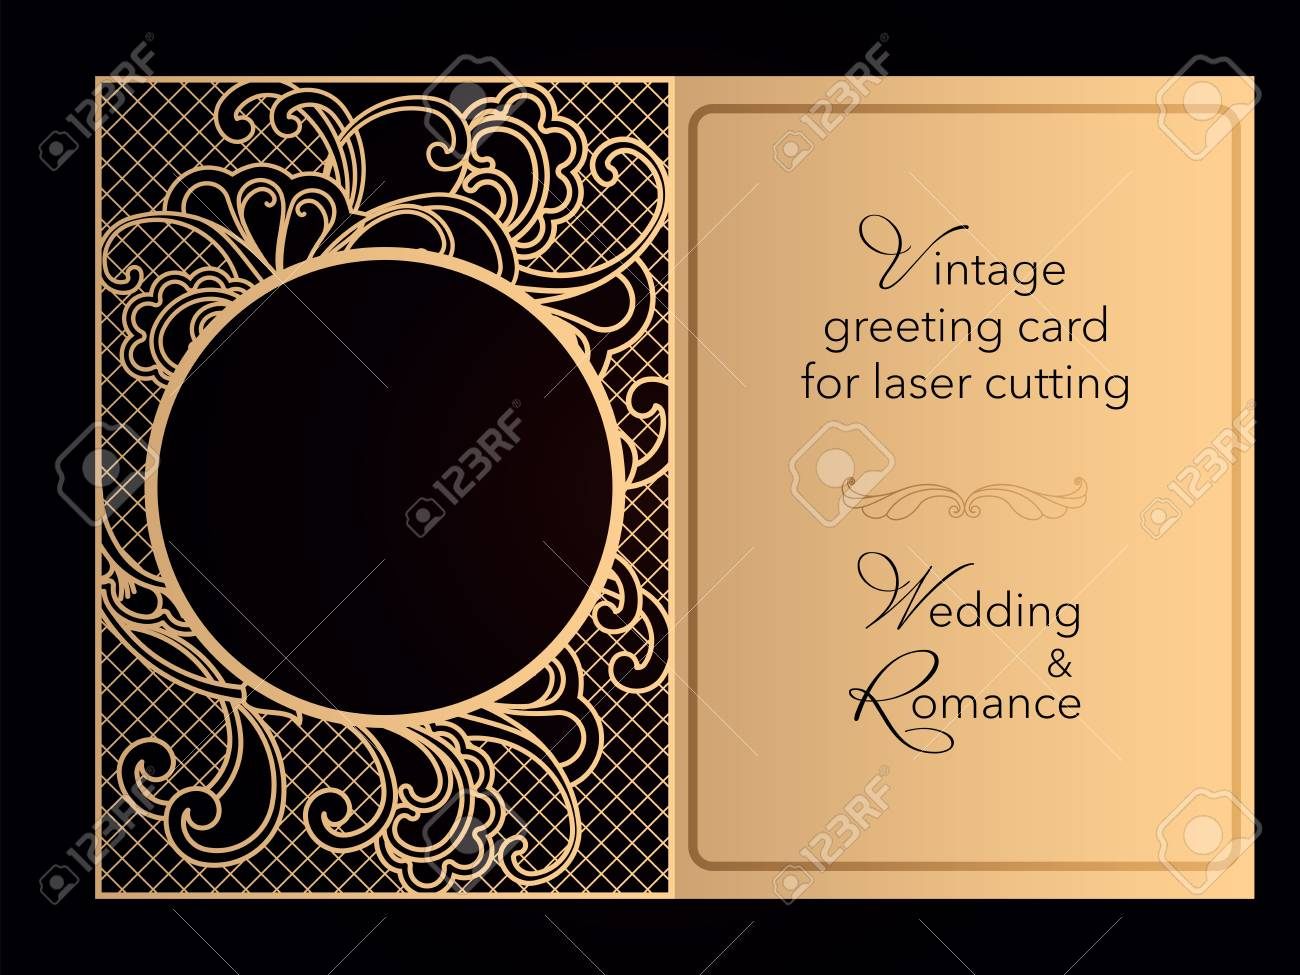 Laser Cutting Openwork Template Wedding Invitation Greeting Card Cover For A Romantic Menu In A Restaurant Delicate Pattern With Curlicues Vector Royalty Free Cliparts Vectors And Stock Illustration Image 118118653